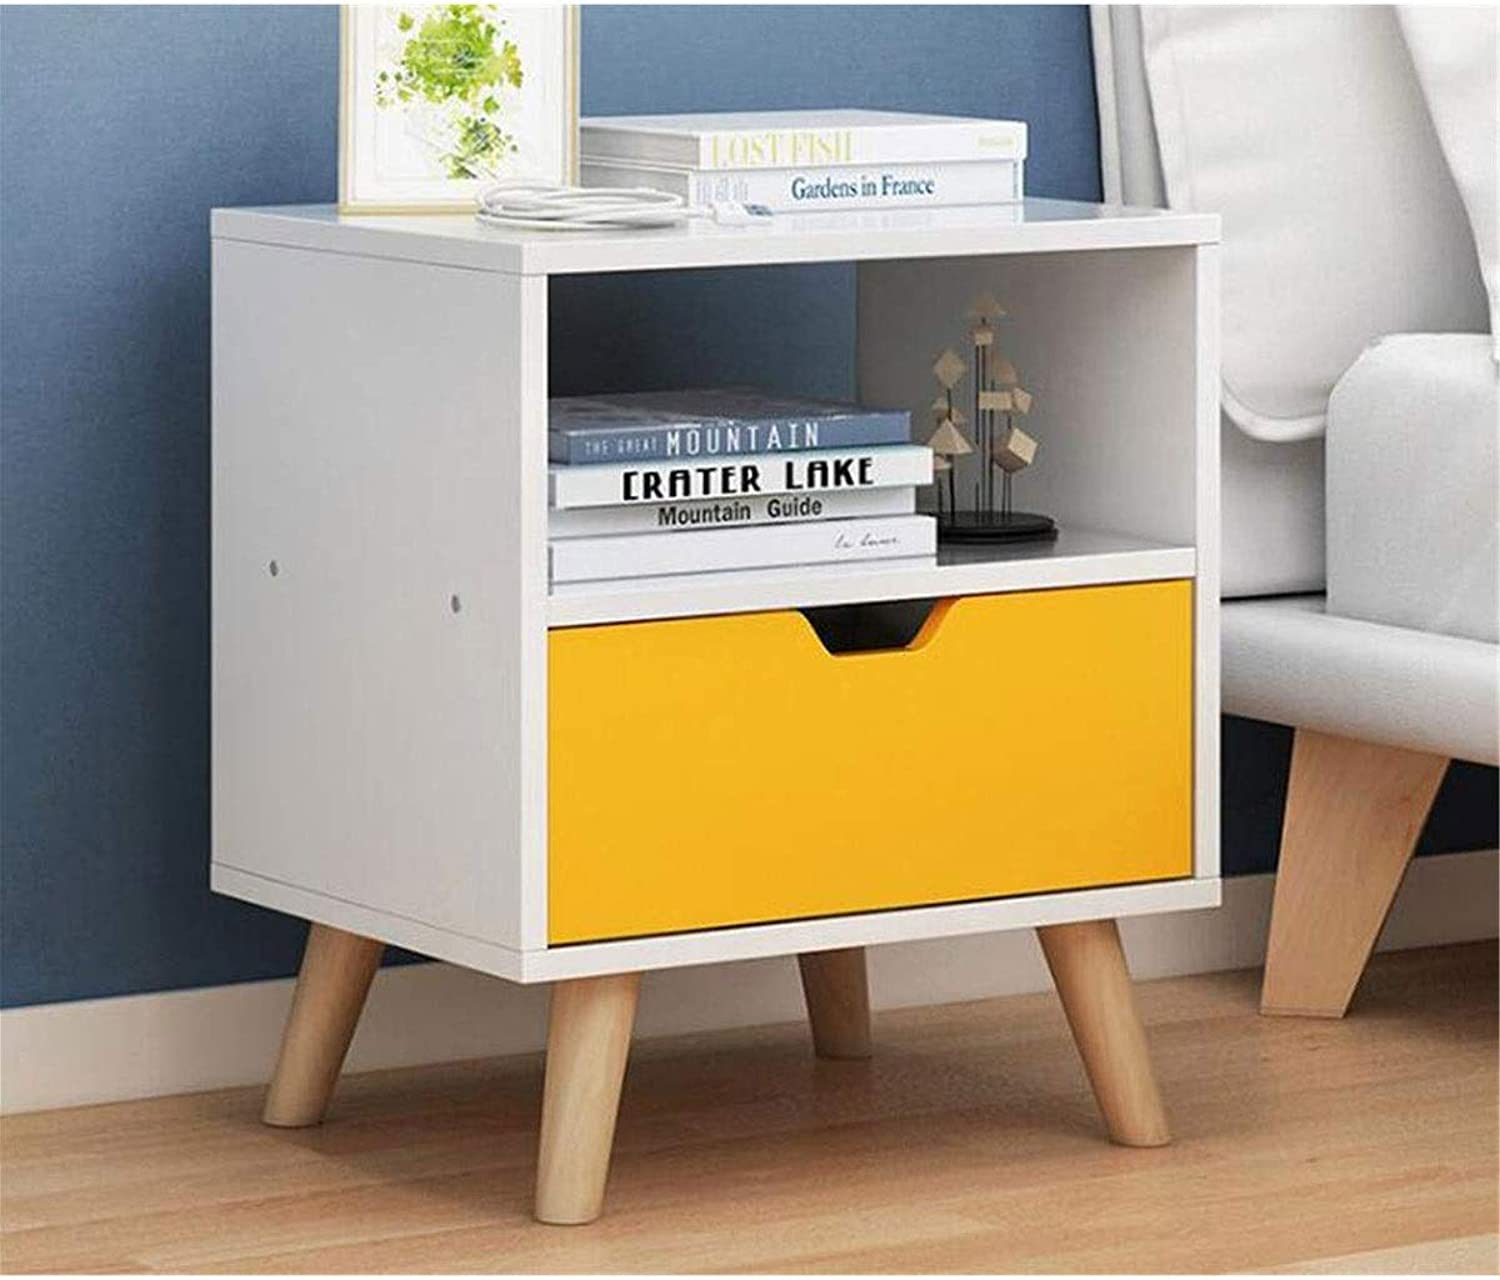 ZOUQILAI Bedside Table Nightstand with 1 Drawers, Bedroom Side Table Bedside Table, Easy to Assemble, Sturdy and Durable, Small and Cute (color   Yellow)